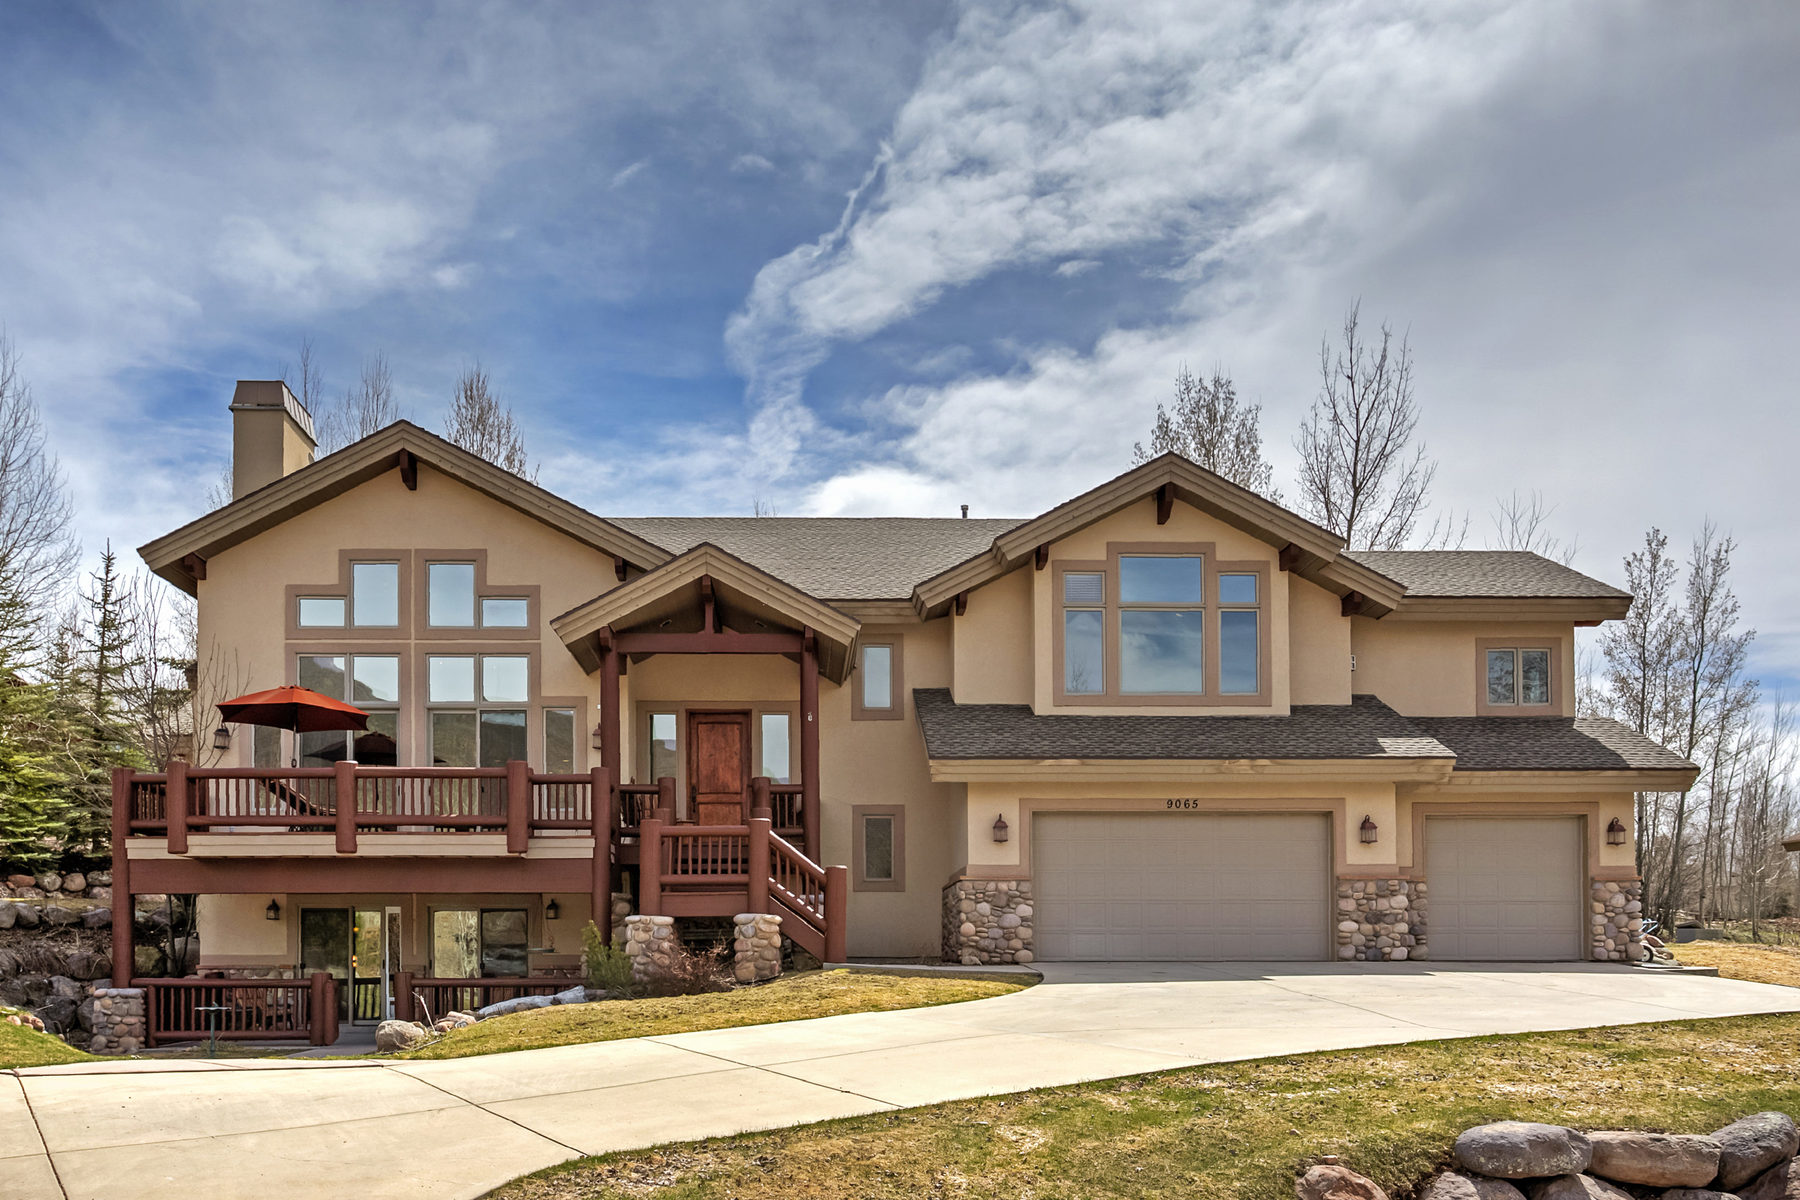 Single Family Home for Sale at Charming Mountain Contemporary 9065 N Cheyenne Way Park City, Utah, 84098 United States